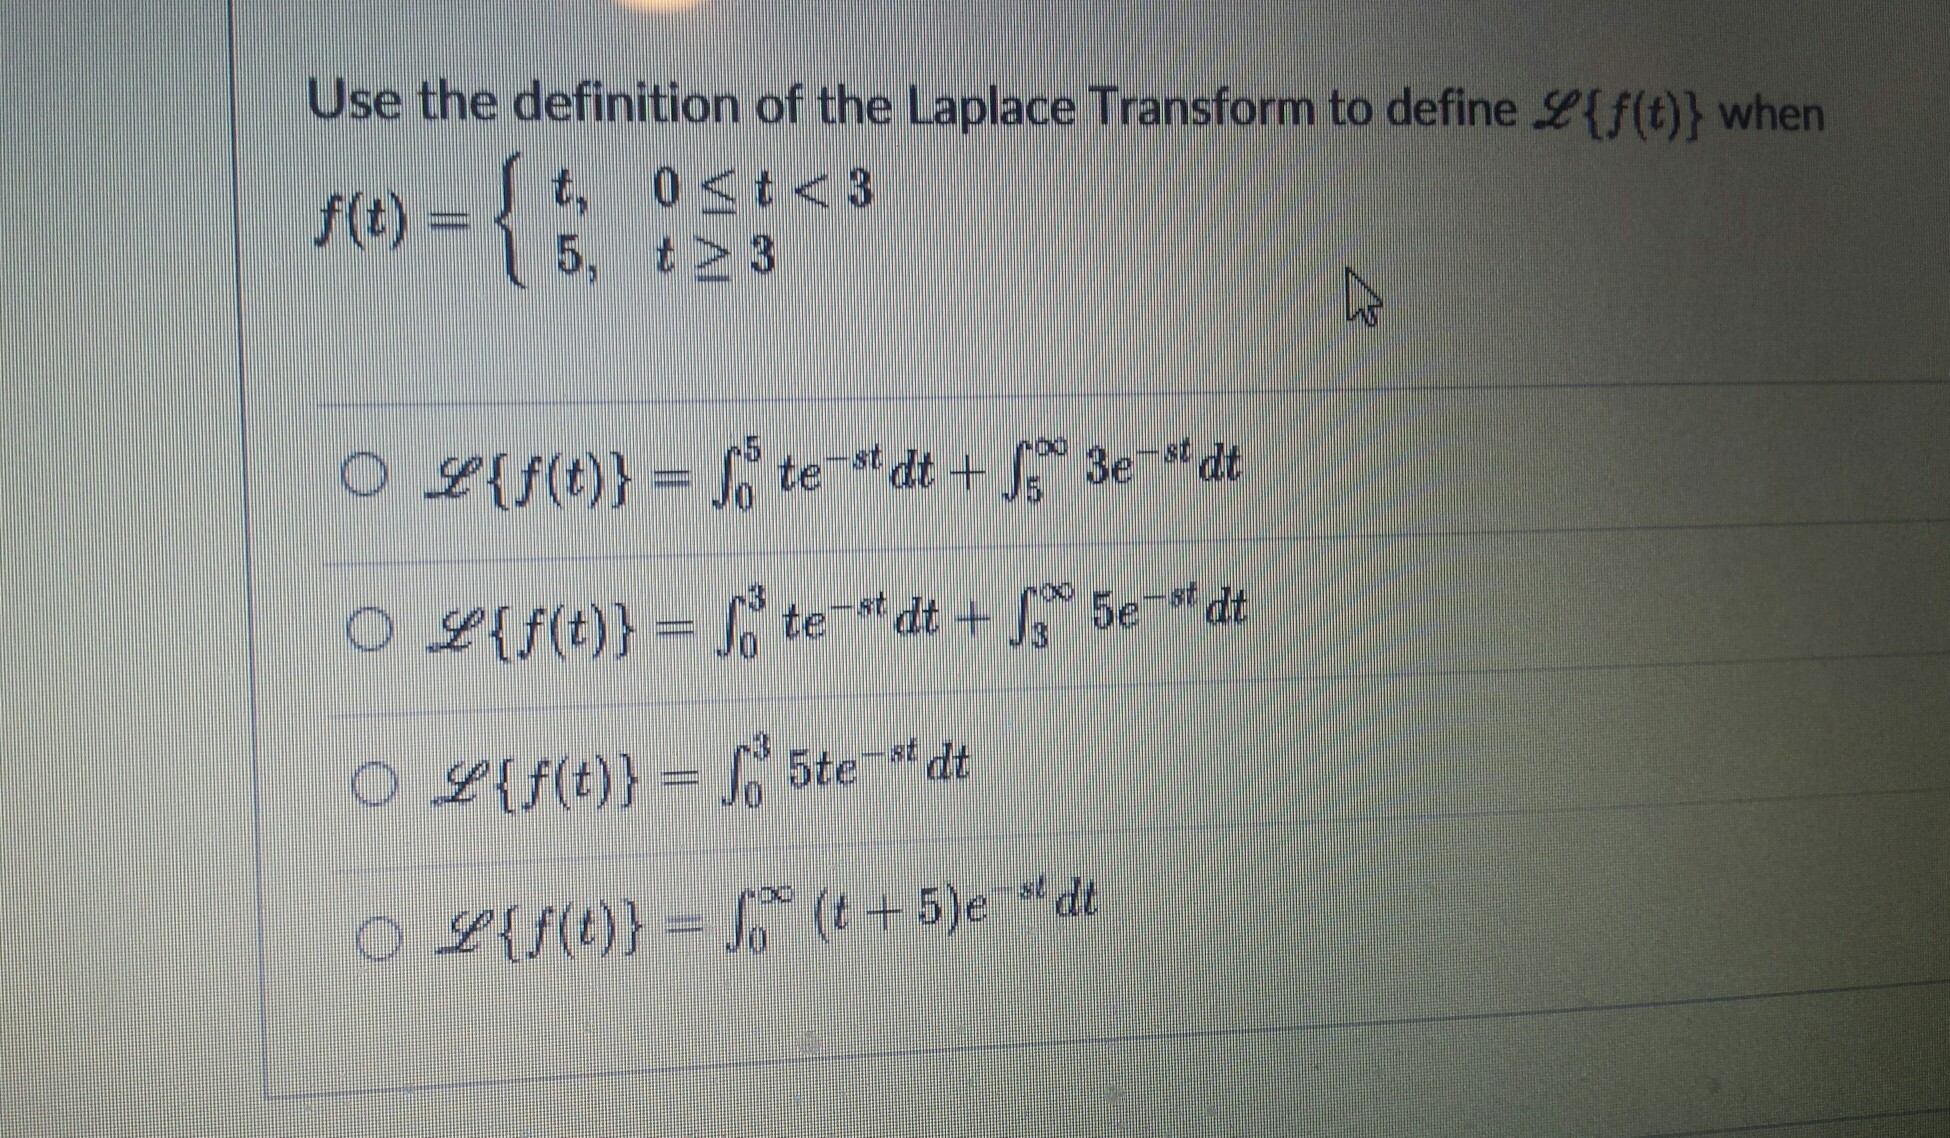 Advanced math archive july 16 2017 chegg use the definition of the laplace transform to define when 5 t3 fandeluxe Choice Image